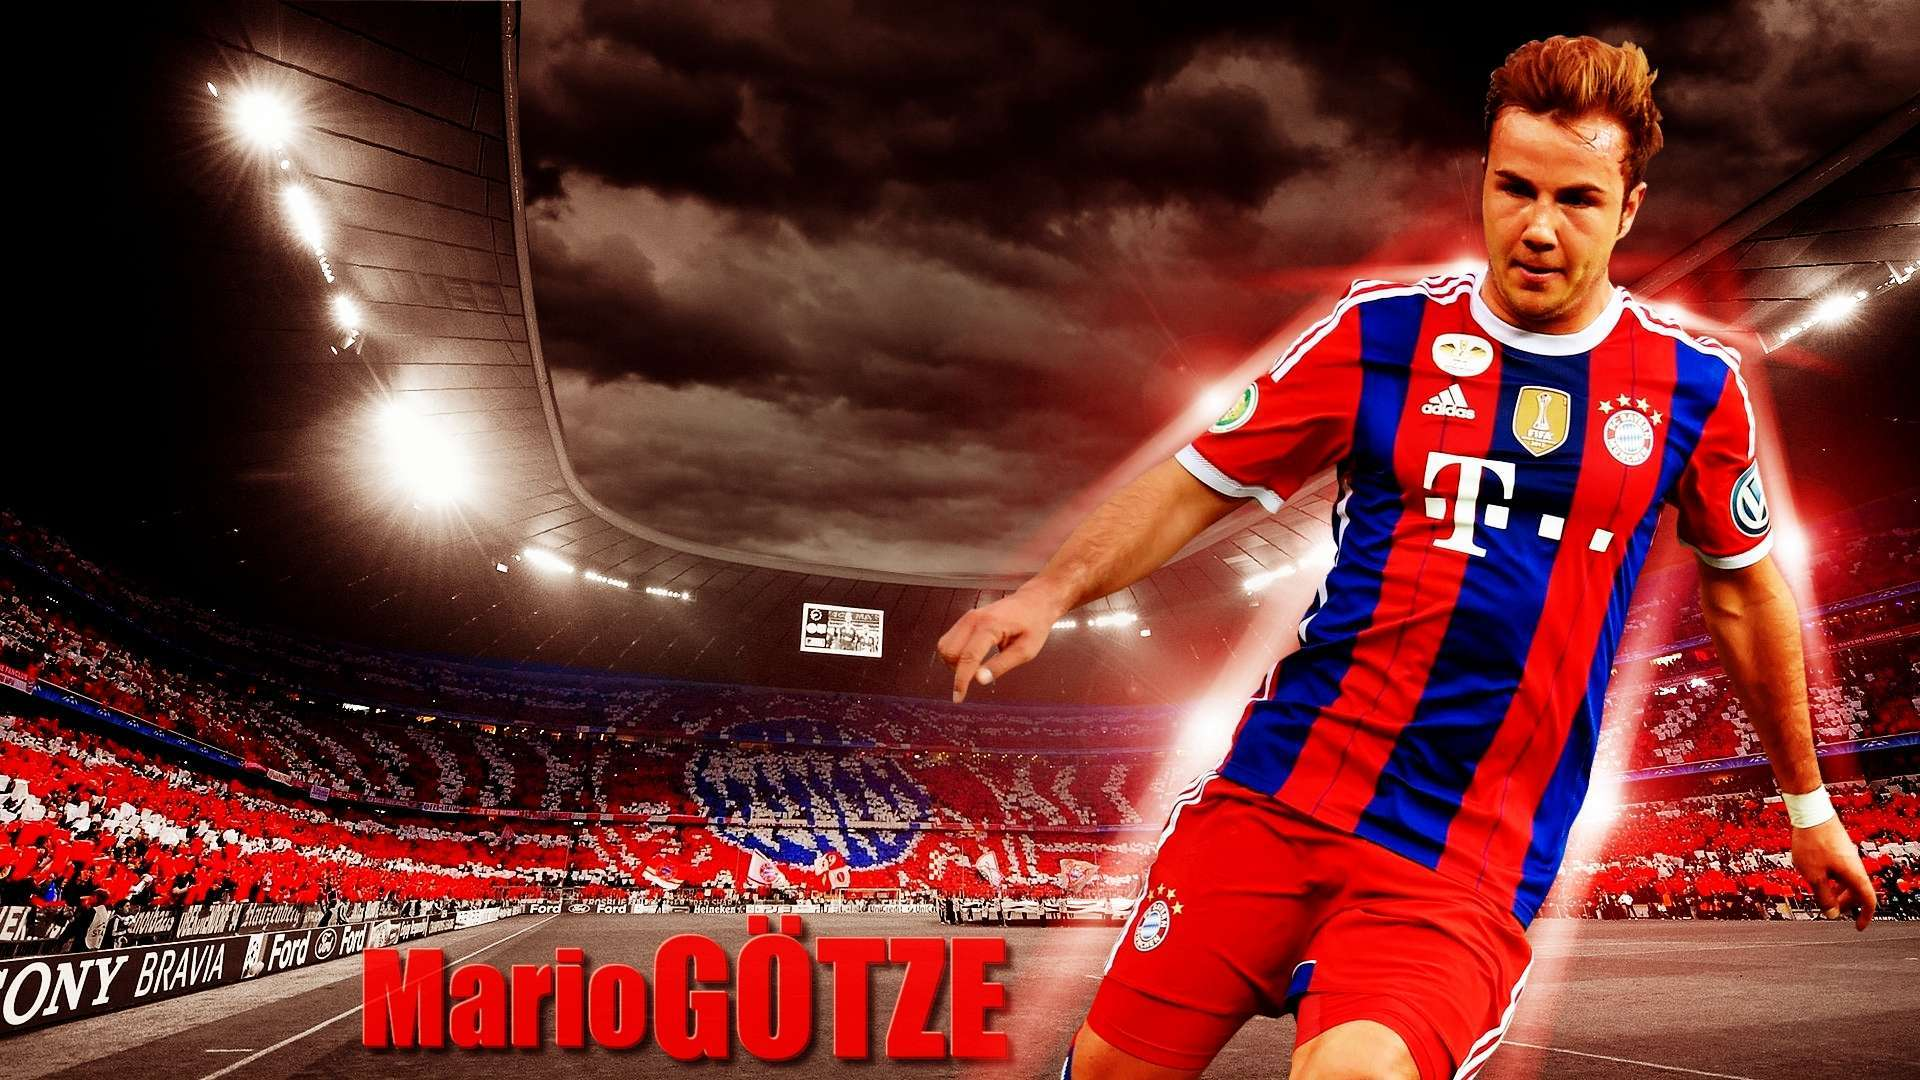 mario gotze wallpaper by chrisramos4 d8n3yphAMB 366